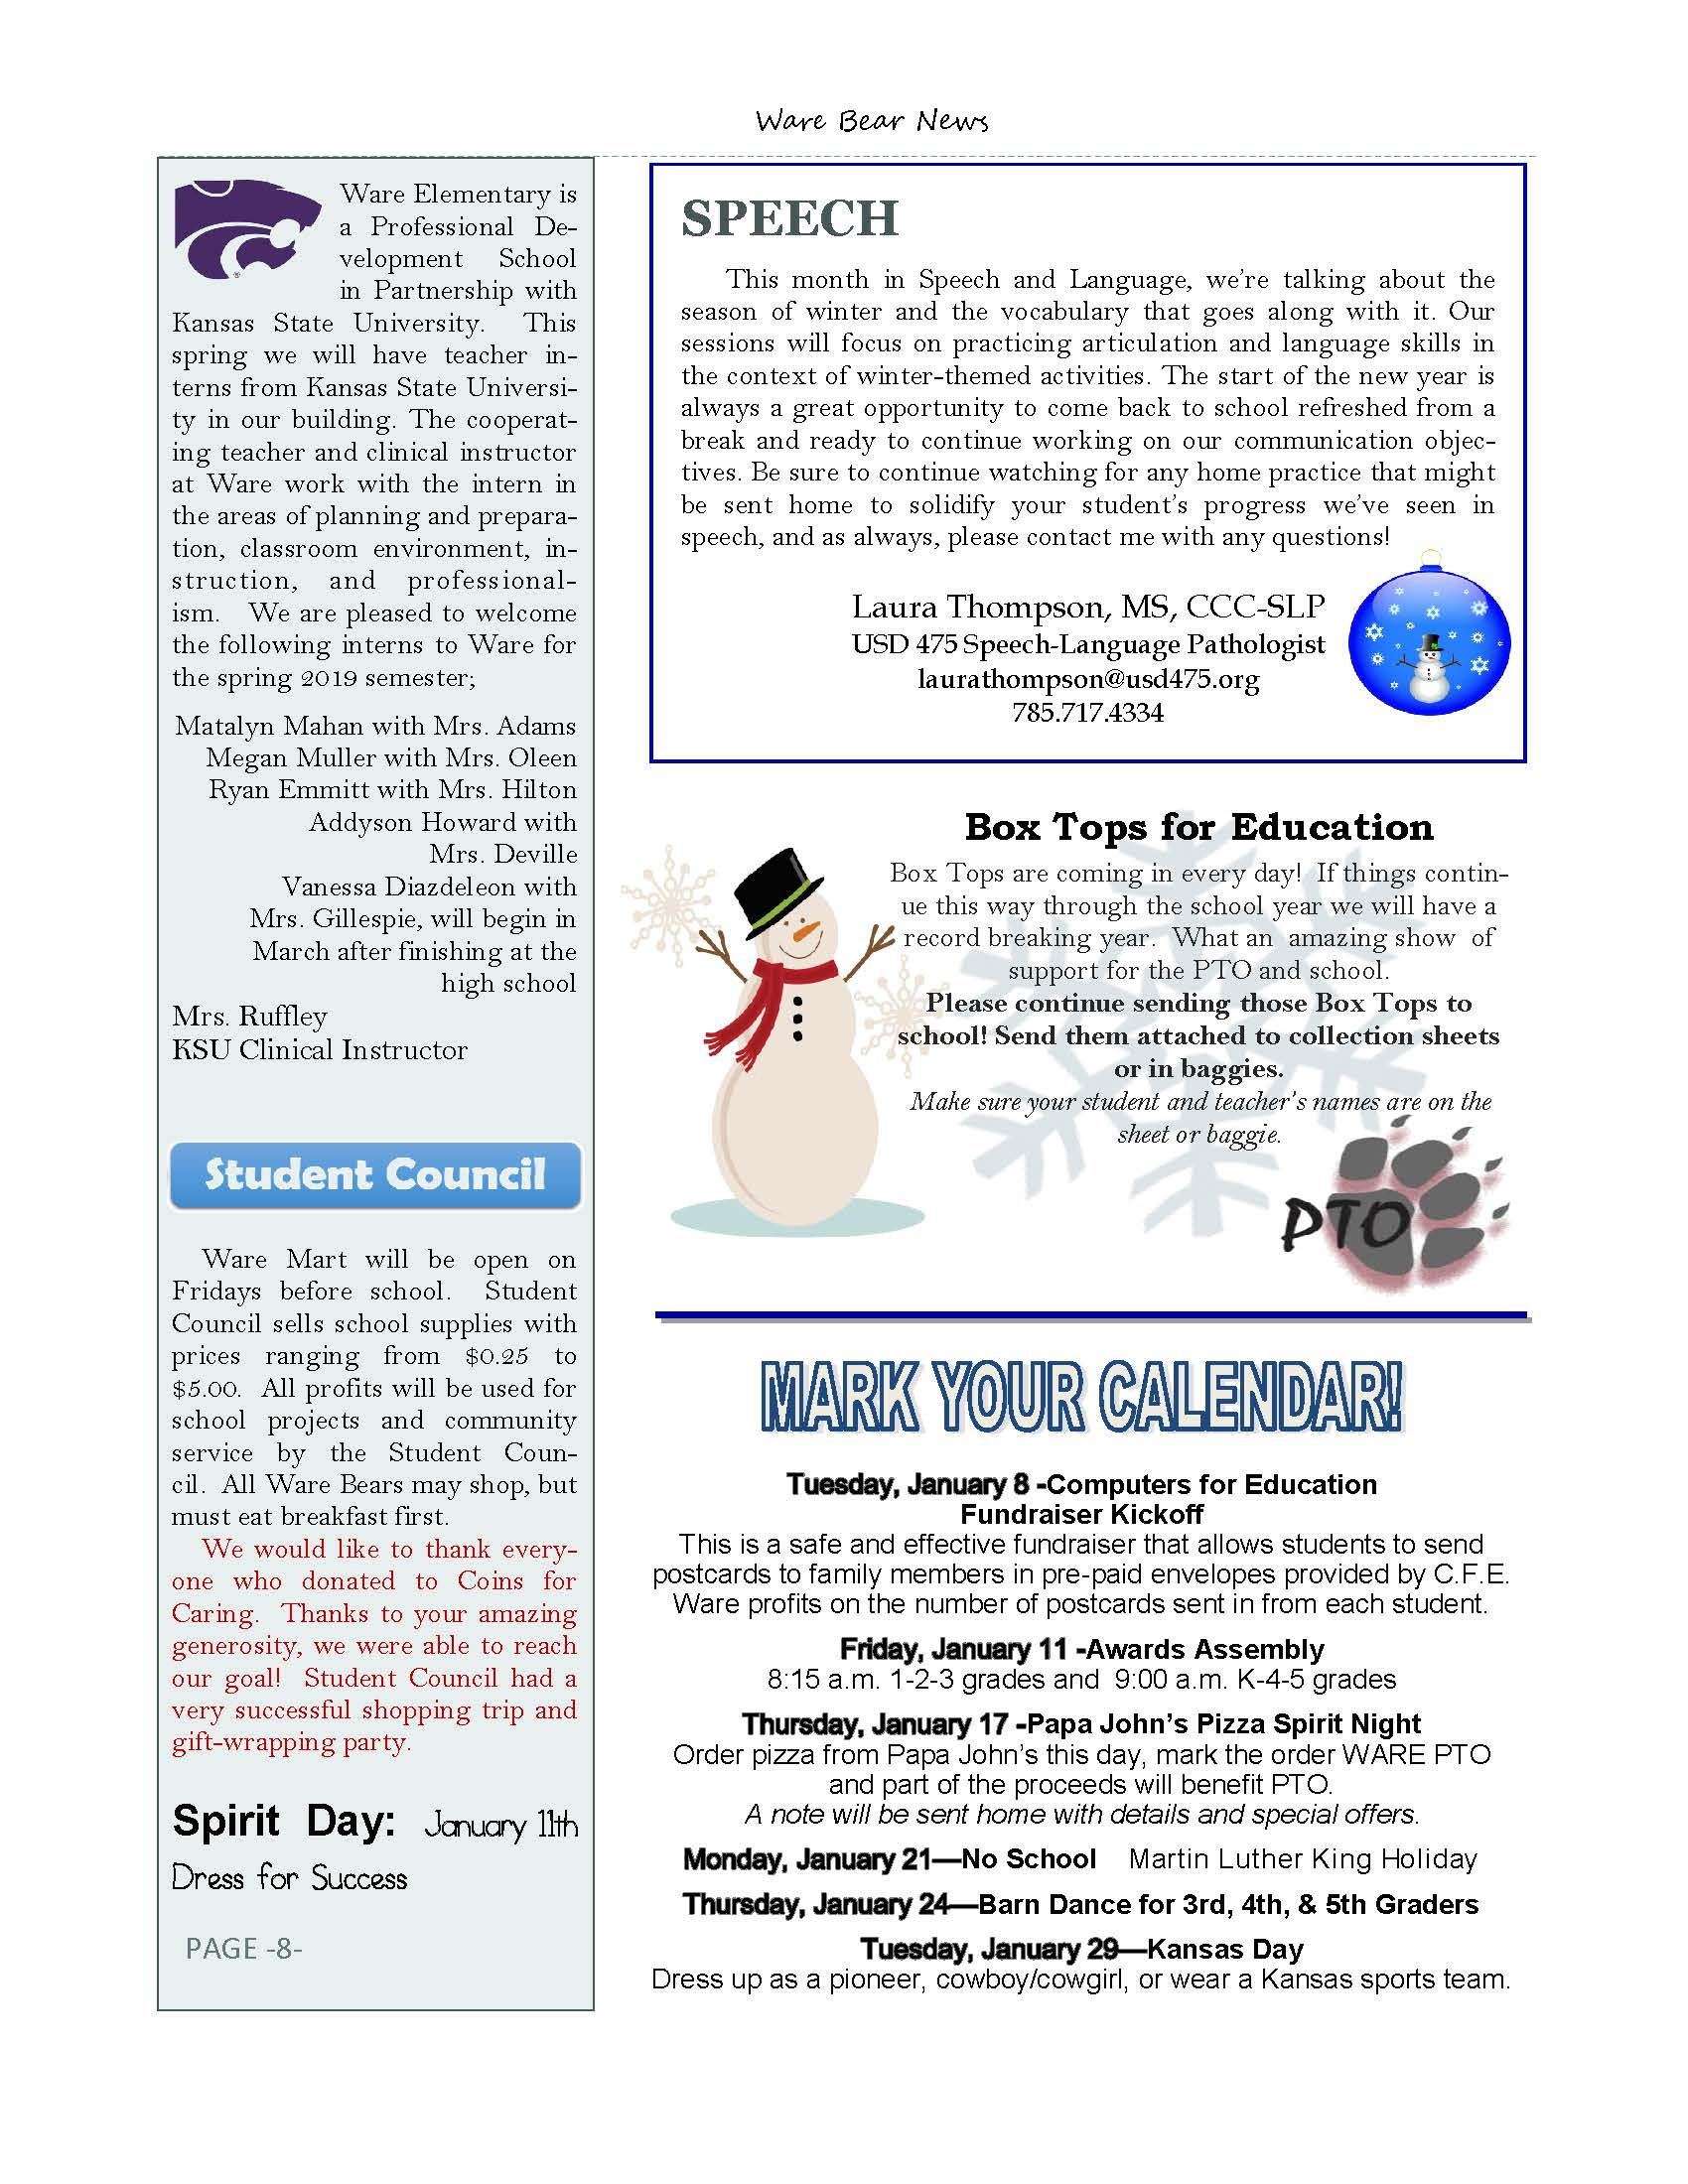 January eNewsletter Page 8